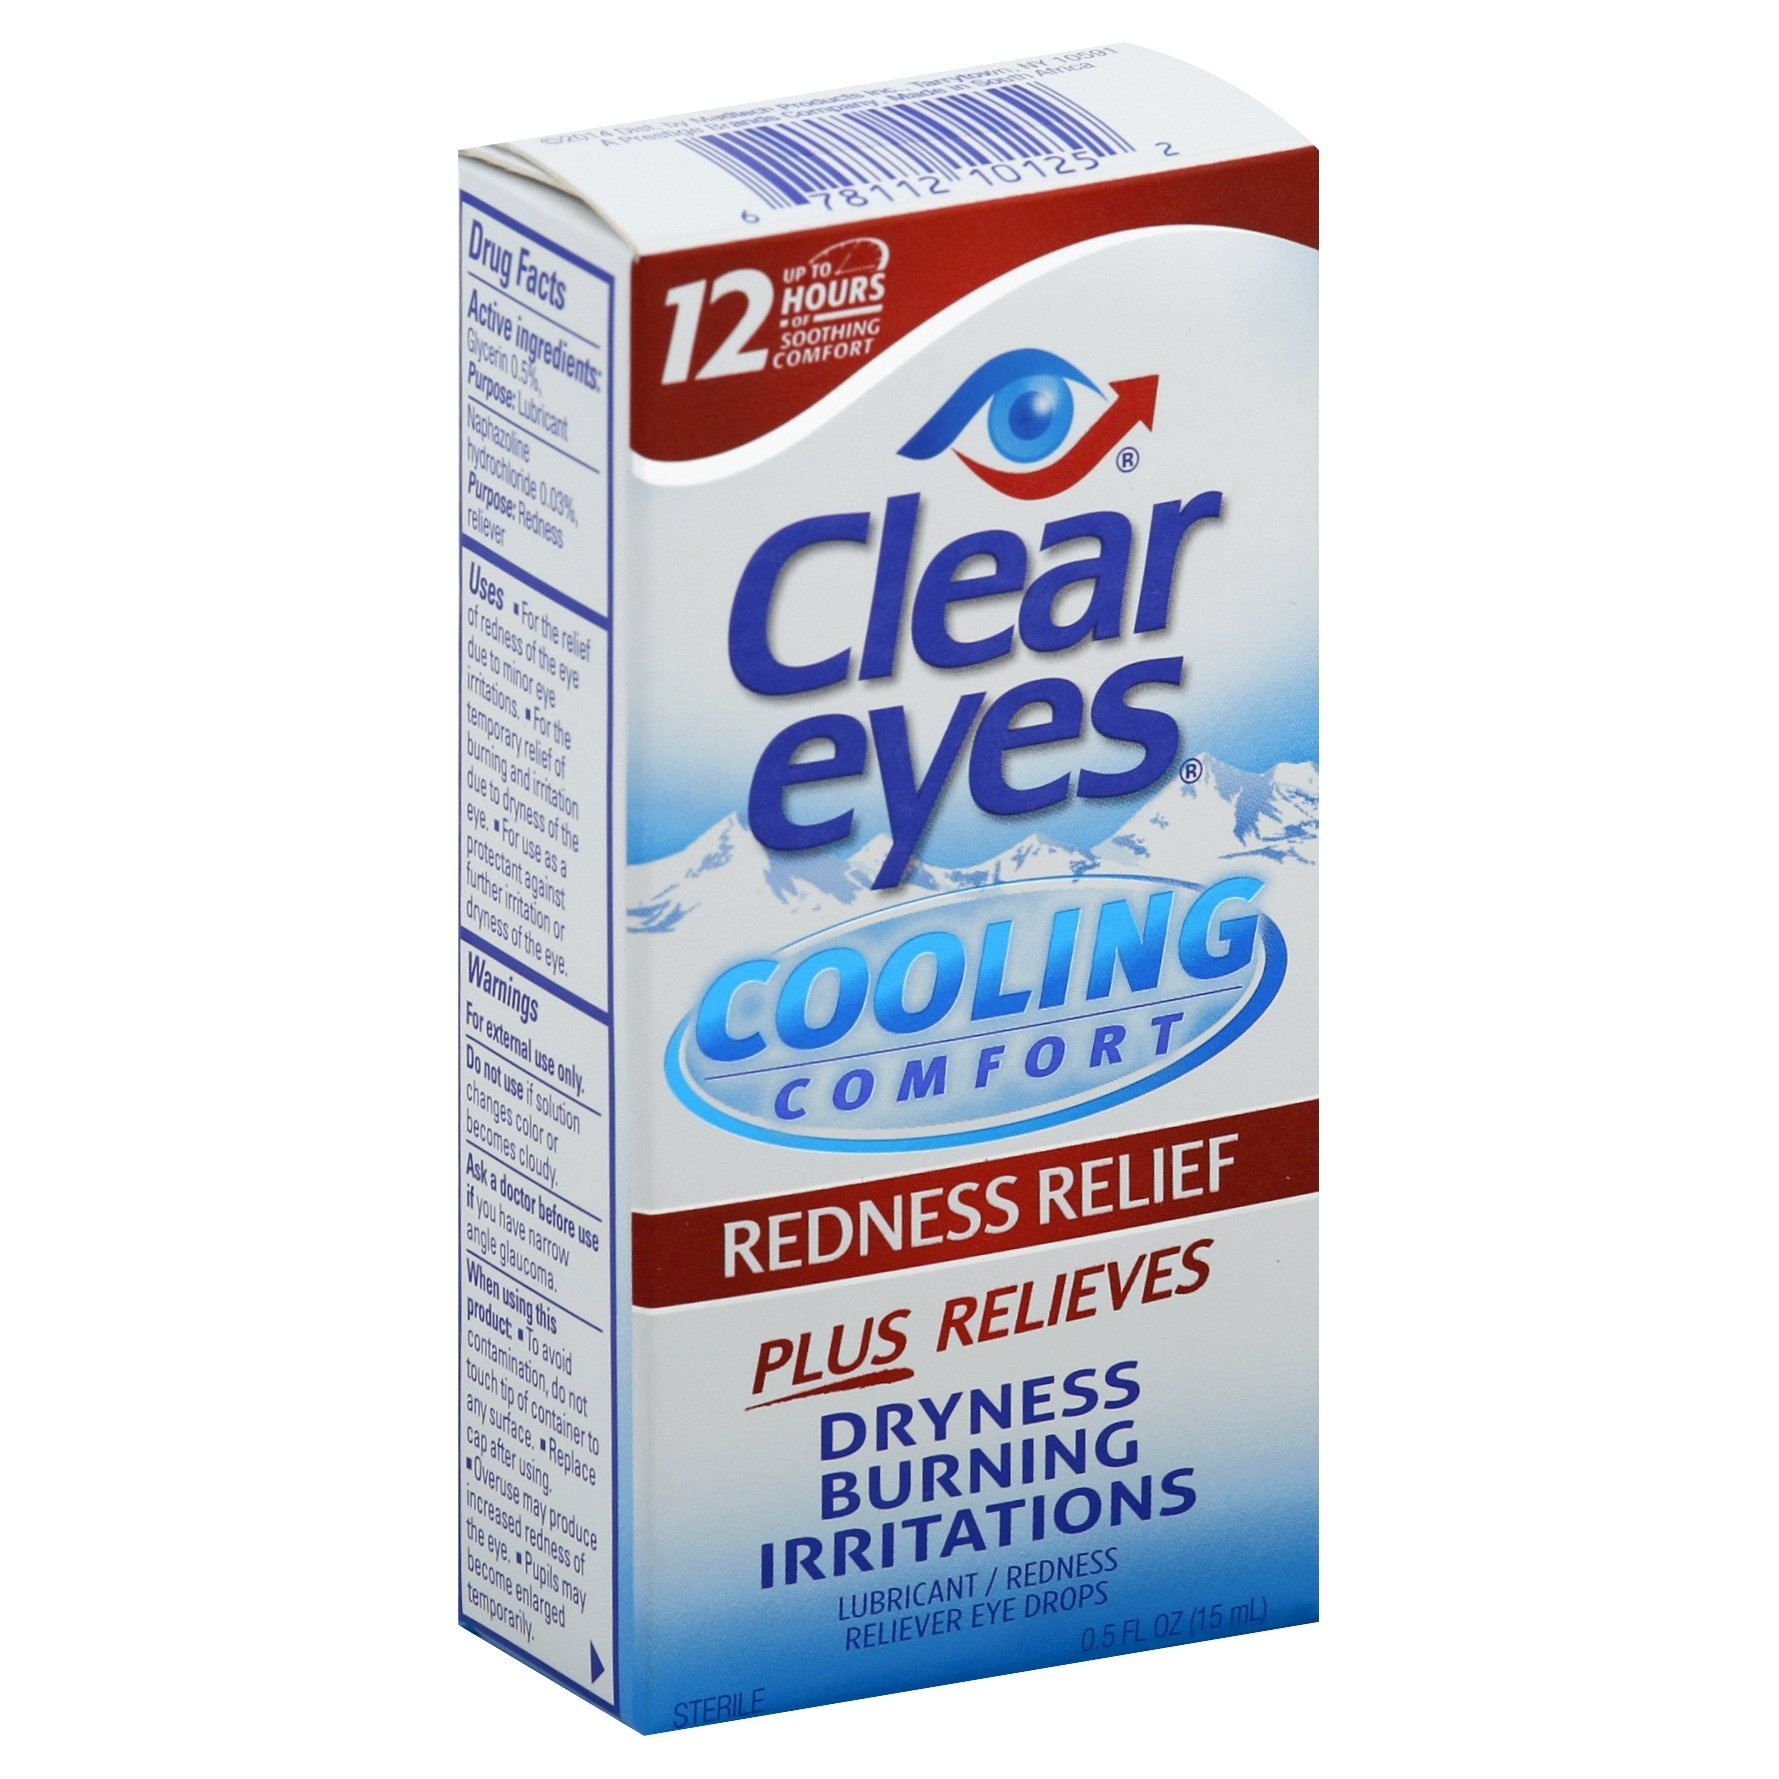 slide 1 of 4, Clear Eyes Cooling Comfort Redness Relief Eye Drops,